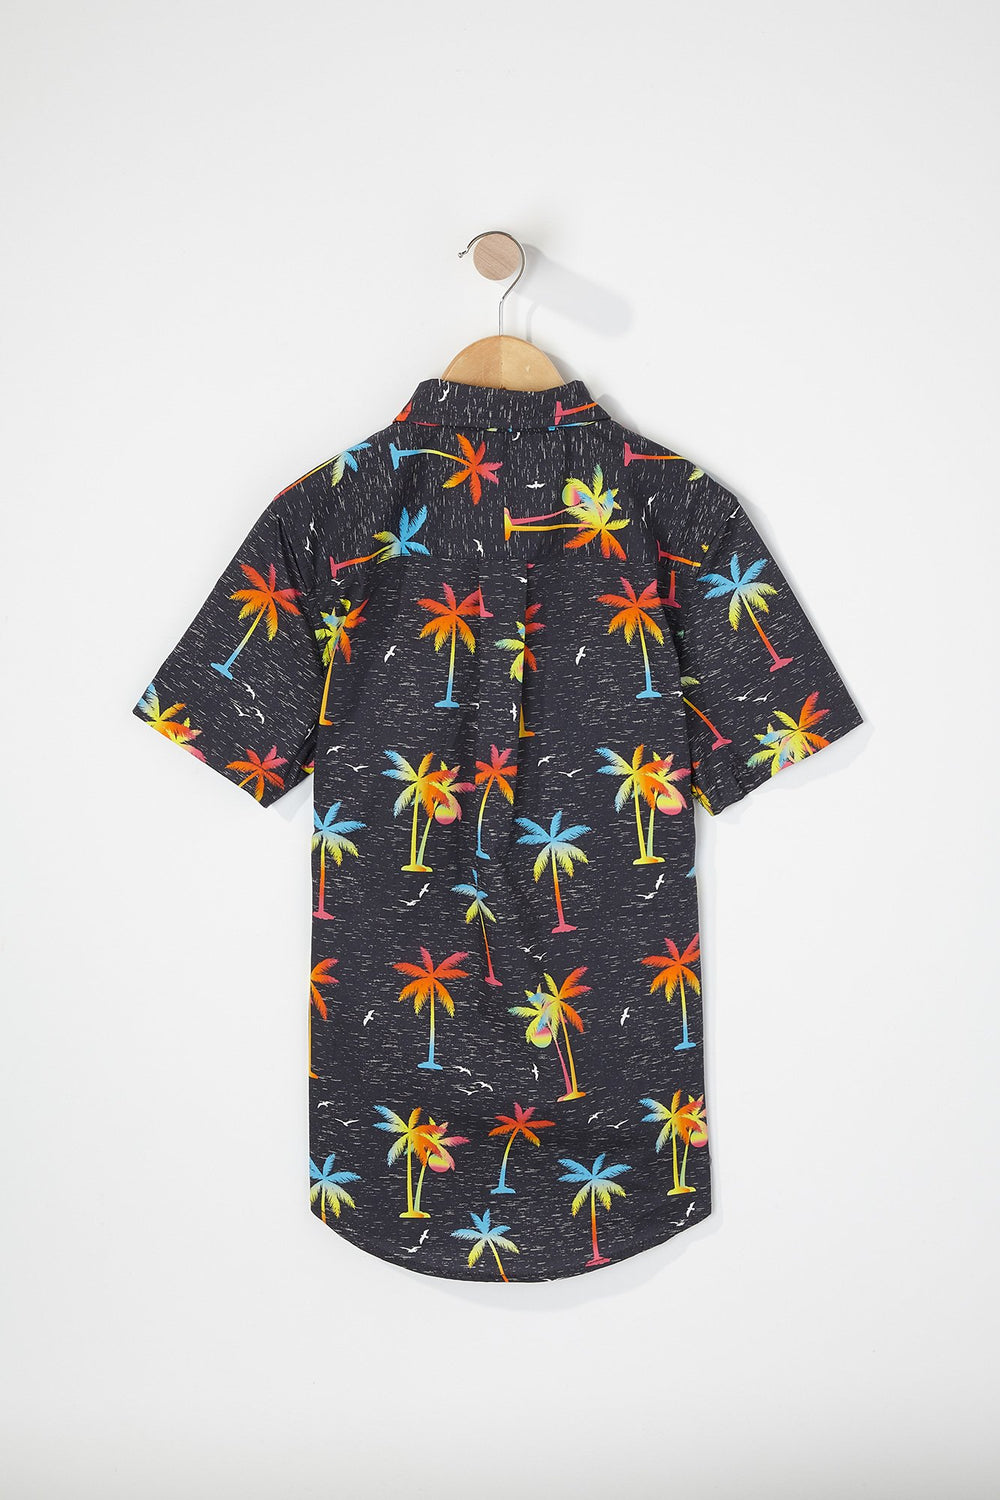 Zoo York Boys Graphic Button-Up Shirt Charcoal